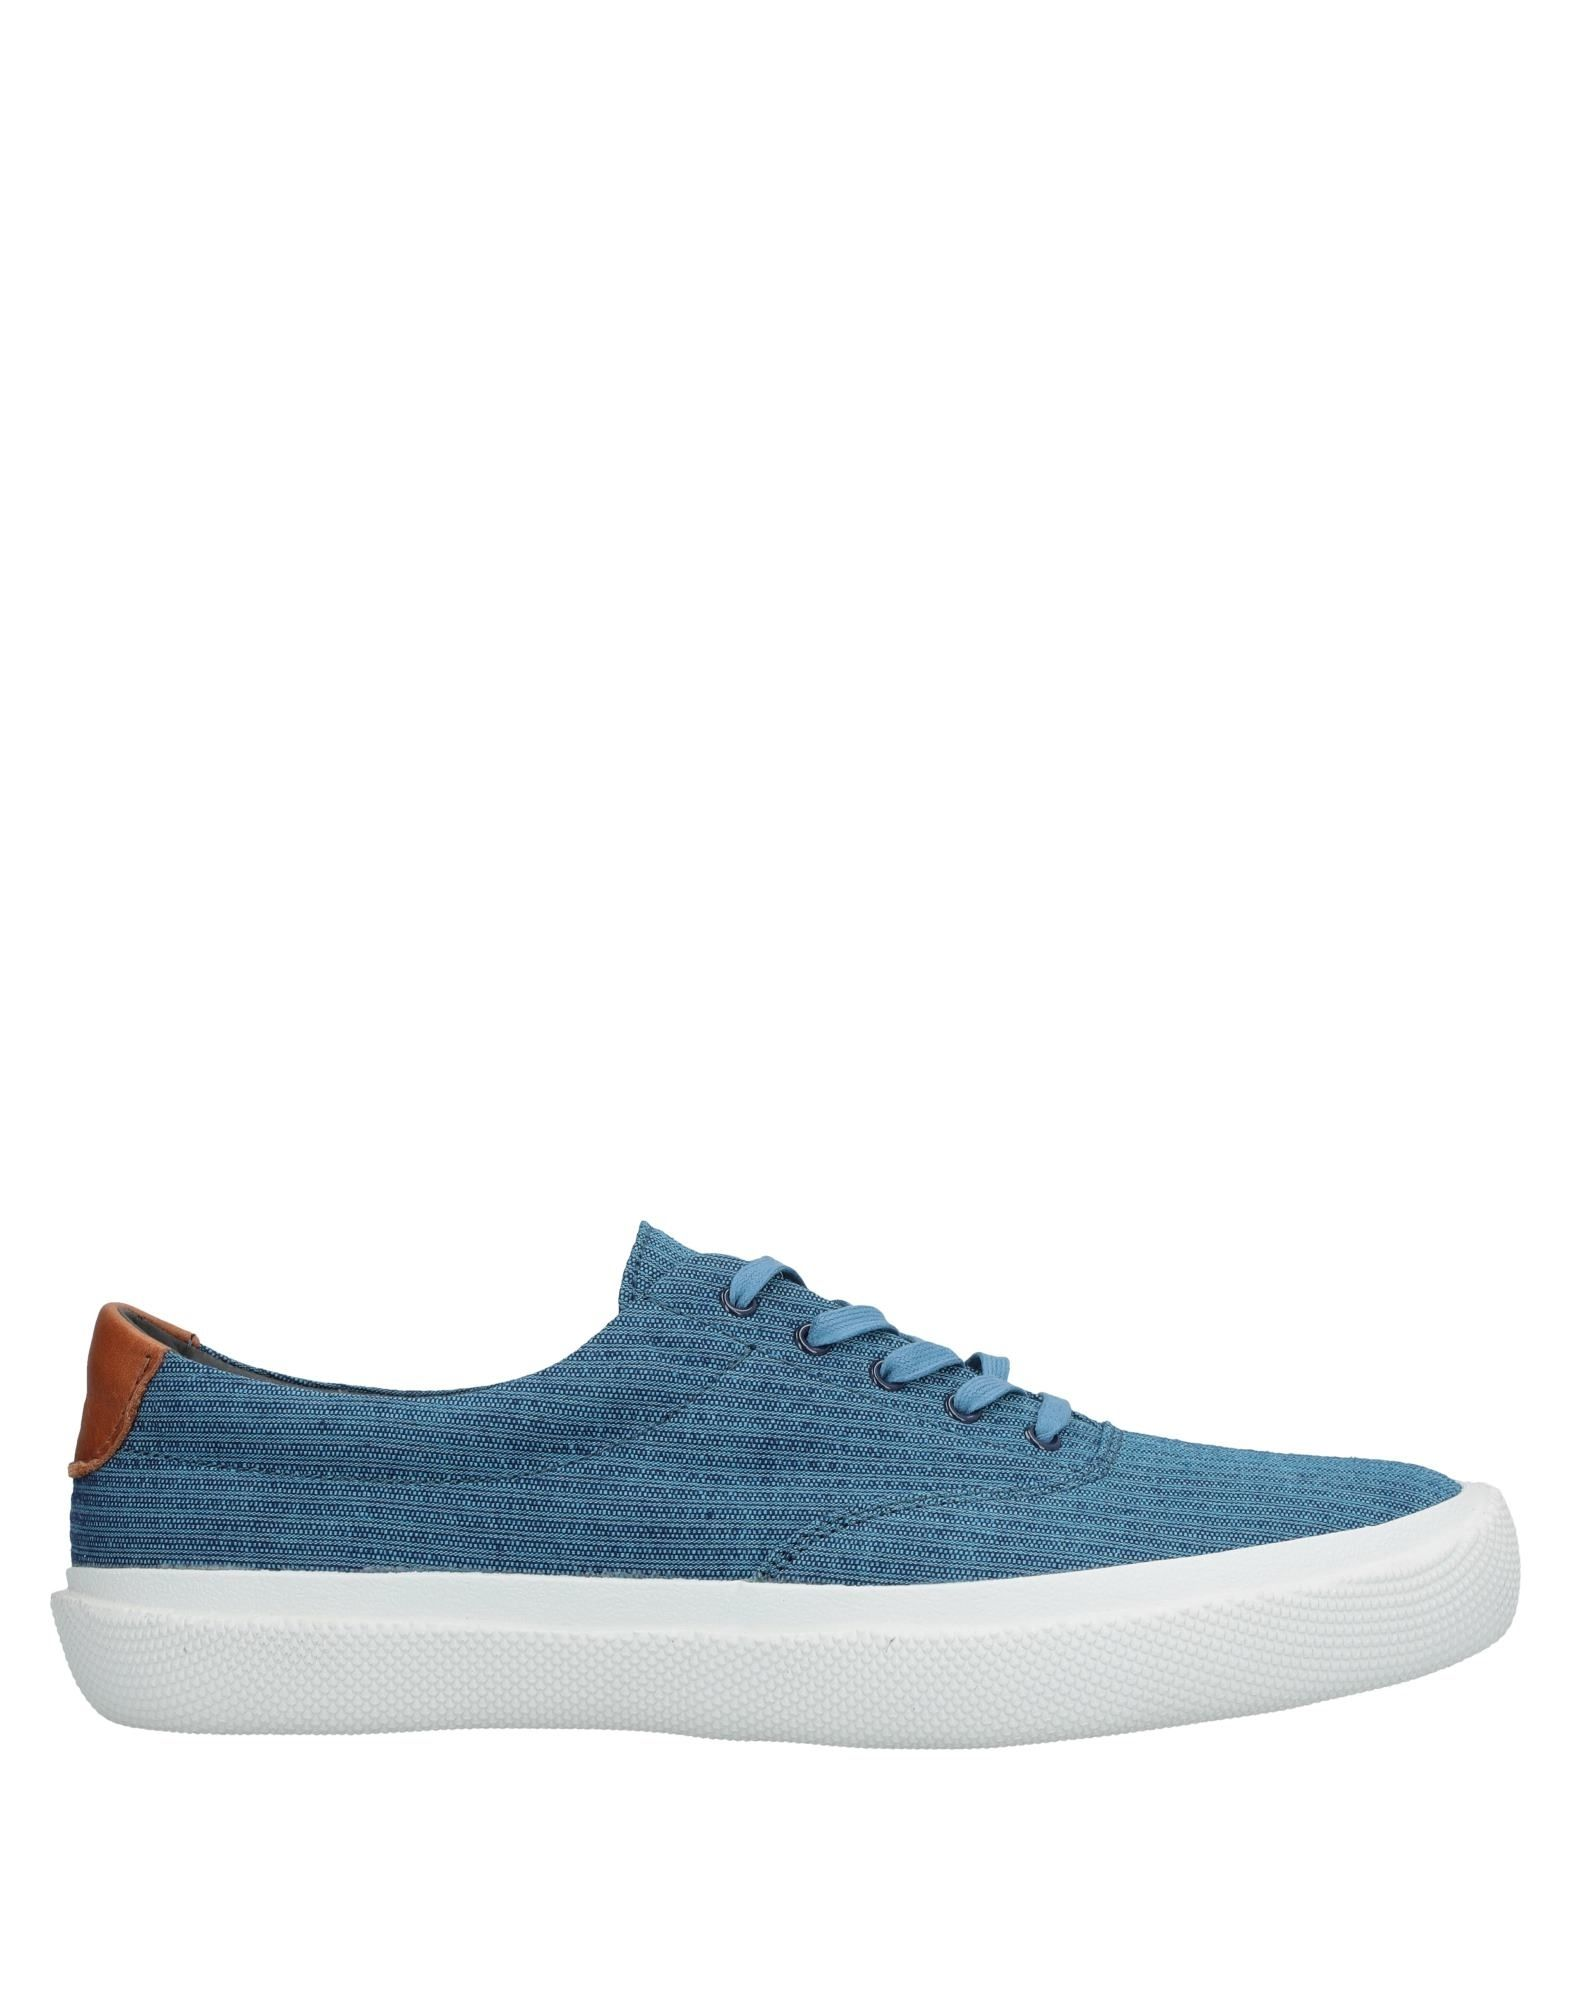 Rabatt echte Schuhe Spingle Move W Sneakers Herren  11537531RV